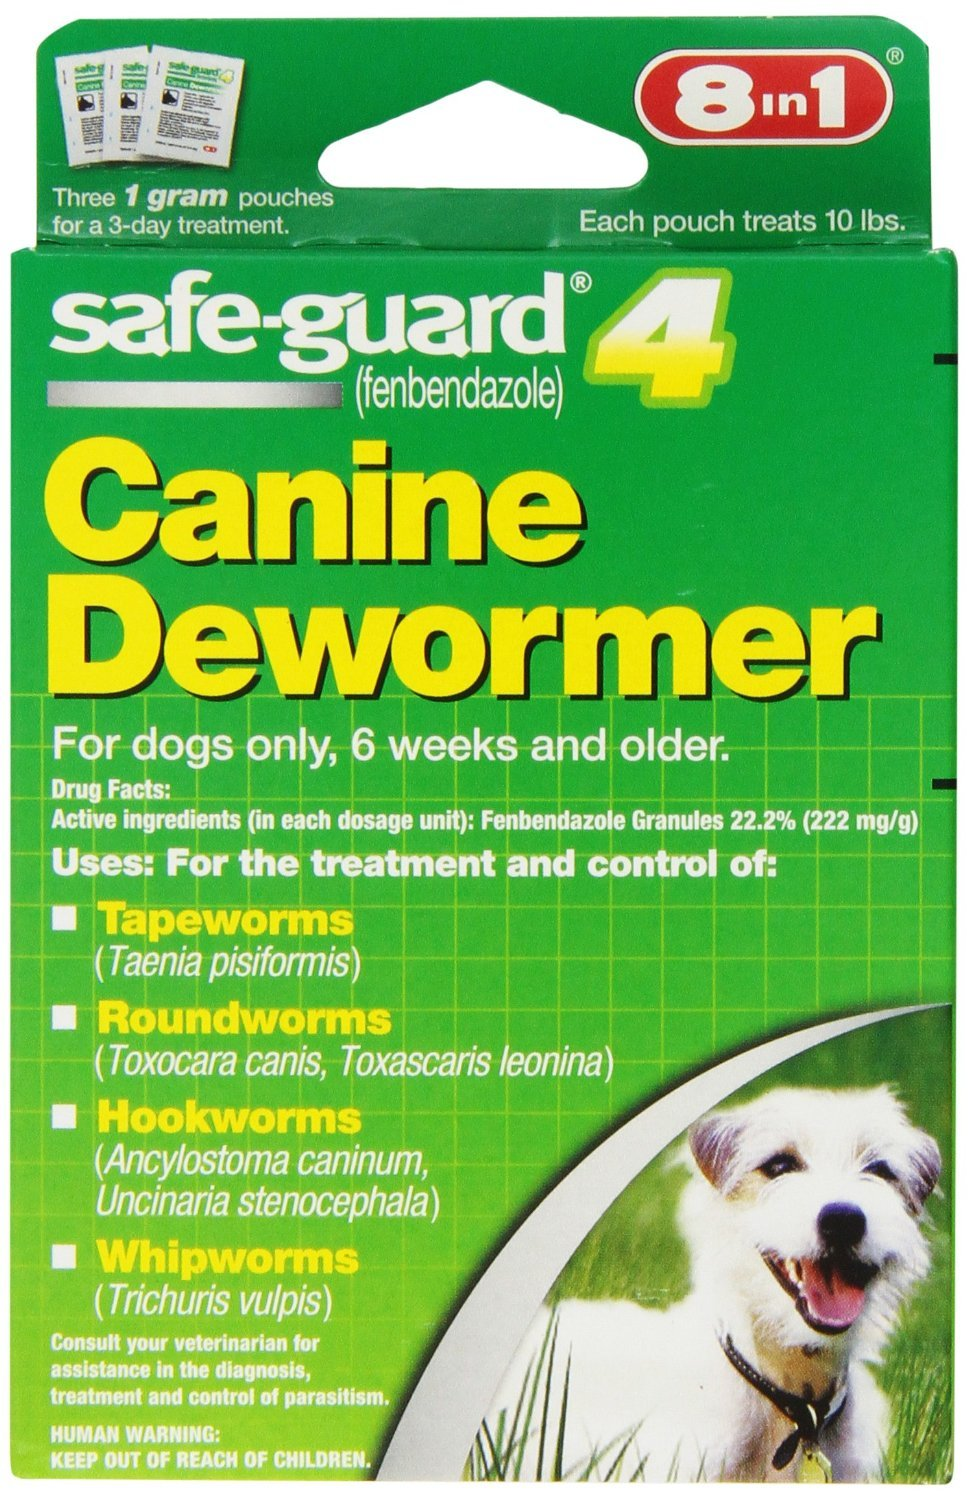 8in1 Safe Guard Canine DeWormer for Small Dogs, 1-Gram, New, Free Shipping